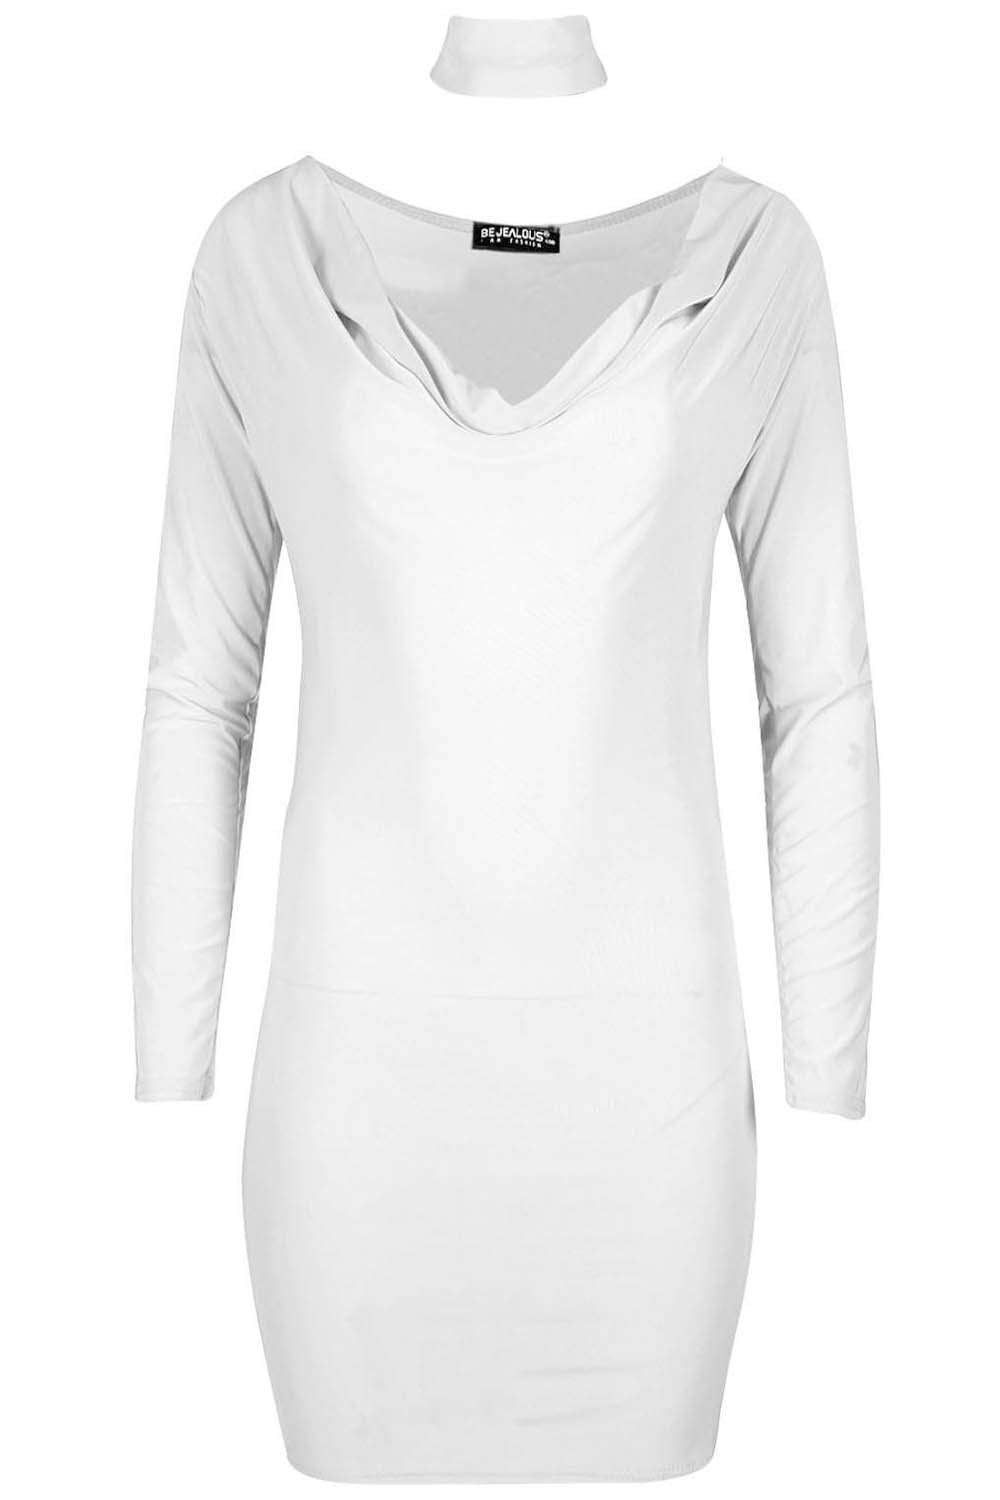 Long Sleeve Choker Neck Bodycon Mini Dress - bejealous-com